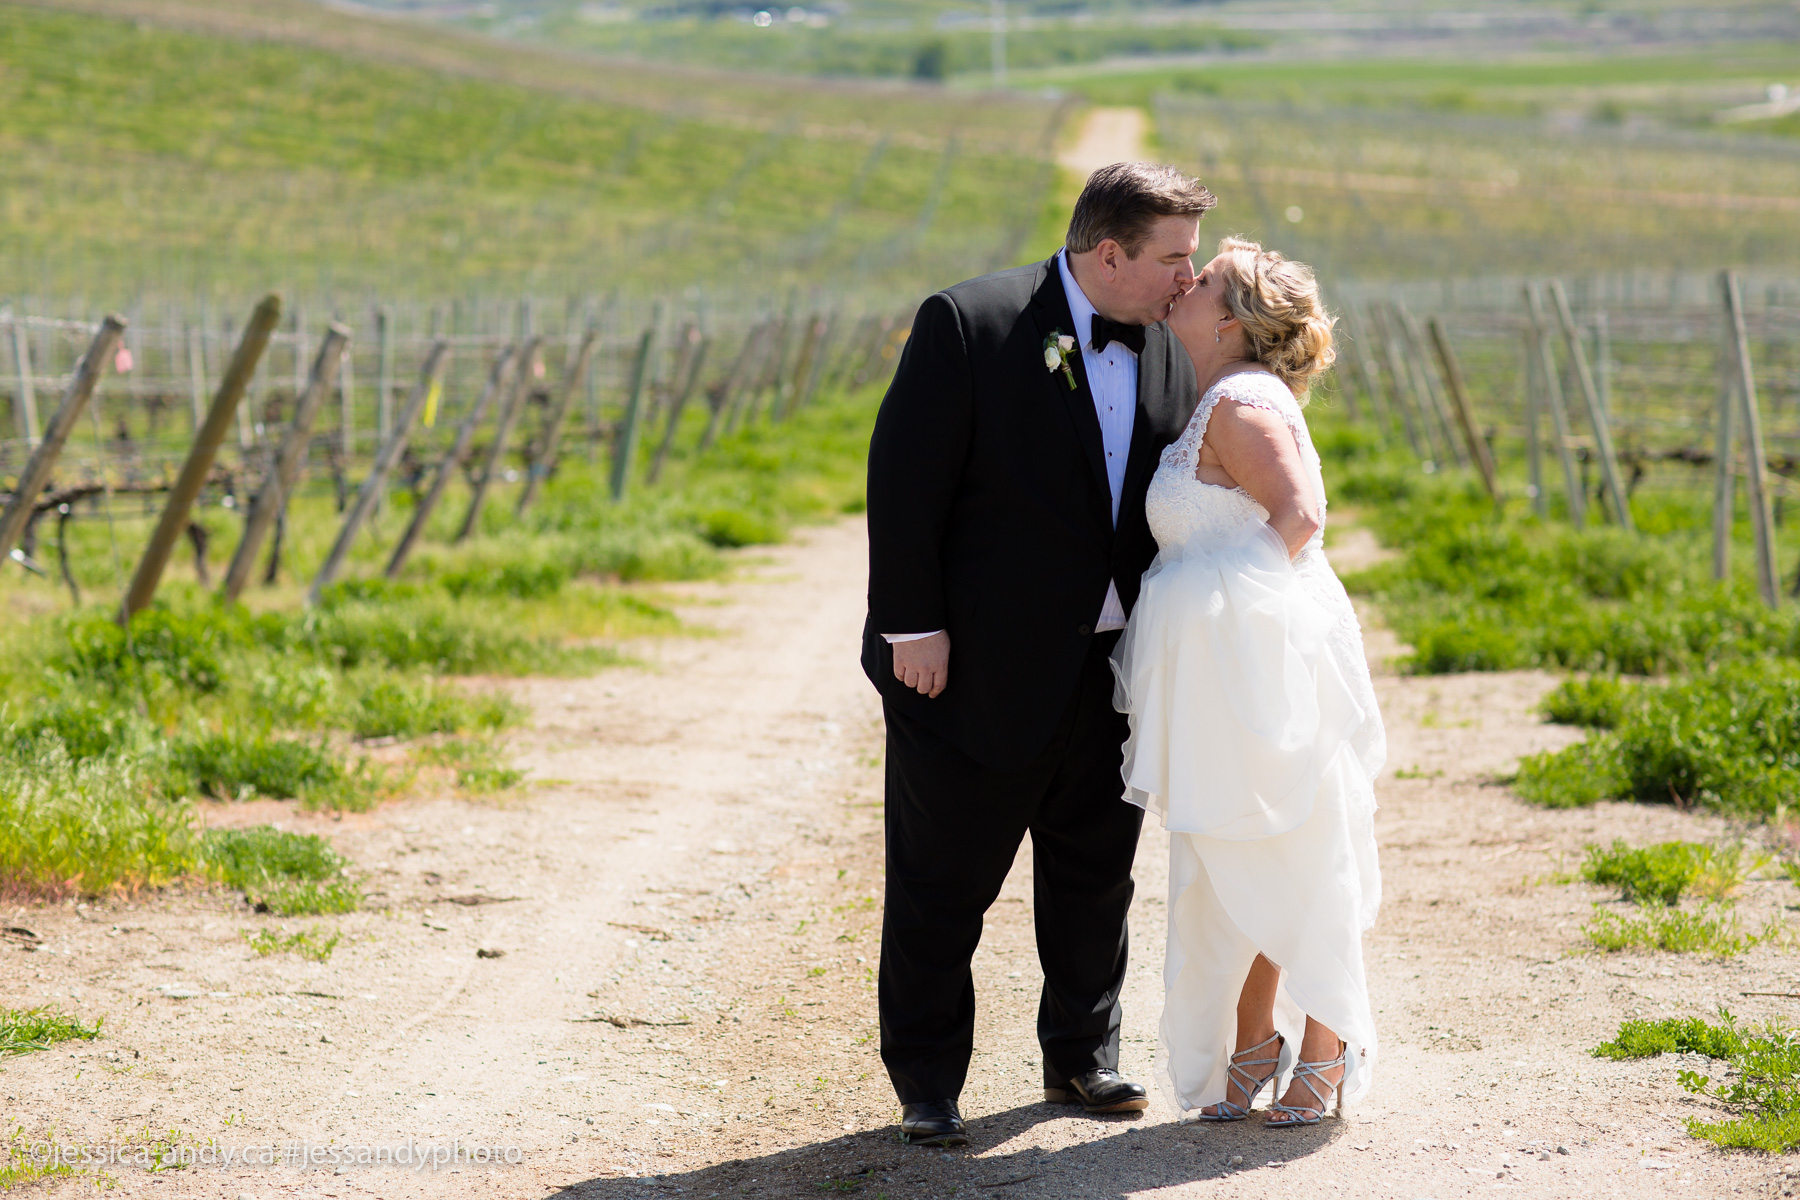 REAL WEDDING   Wine Tasting Wedding in Napa Valley   Jessica & Andy Photography   Pretty Pear Bride